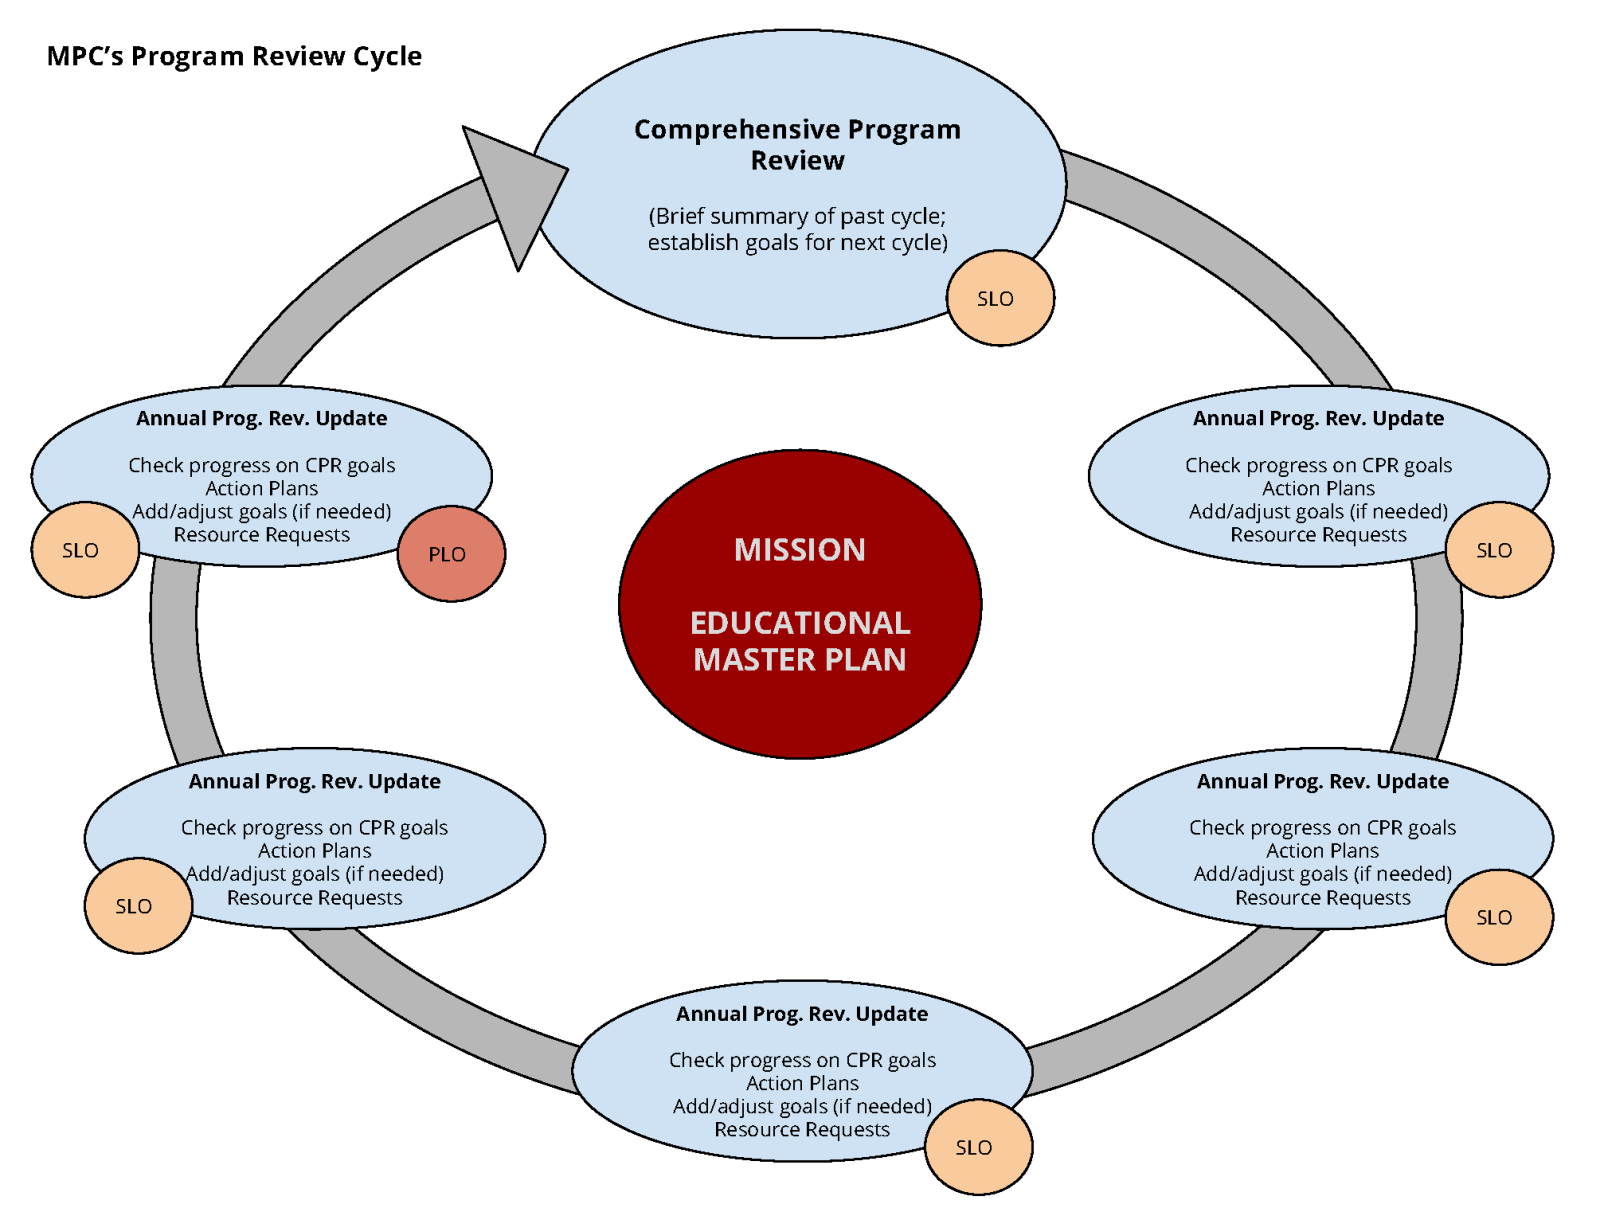 Program Review Cycle Diagram